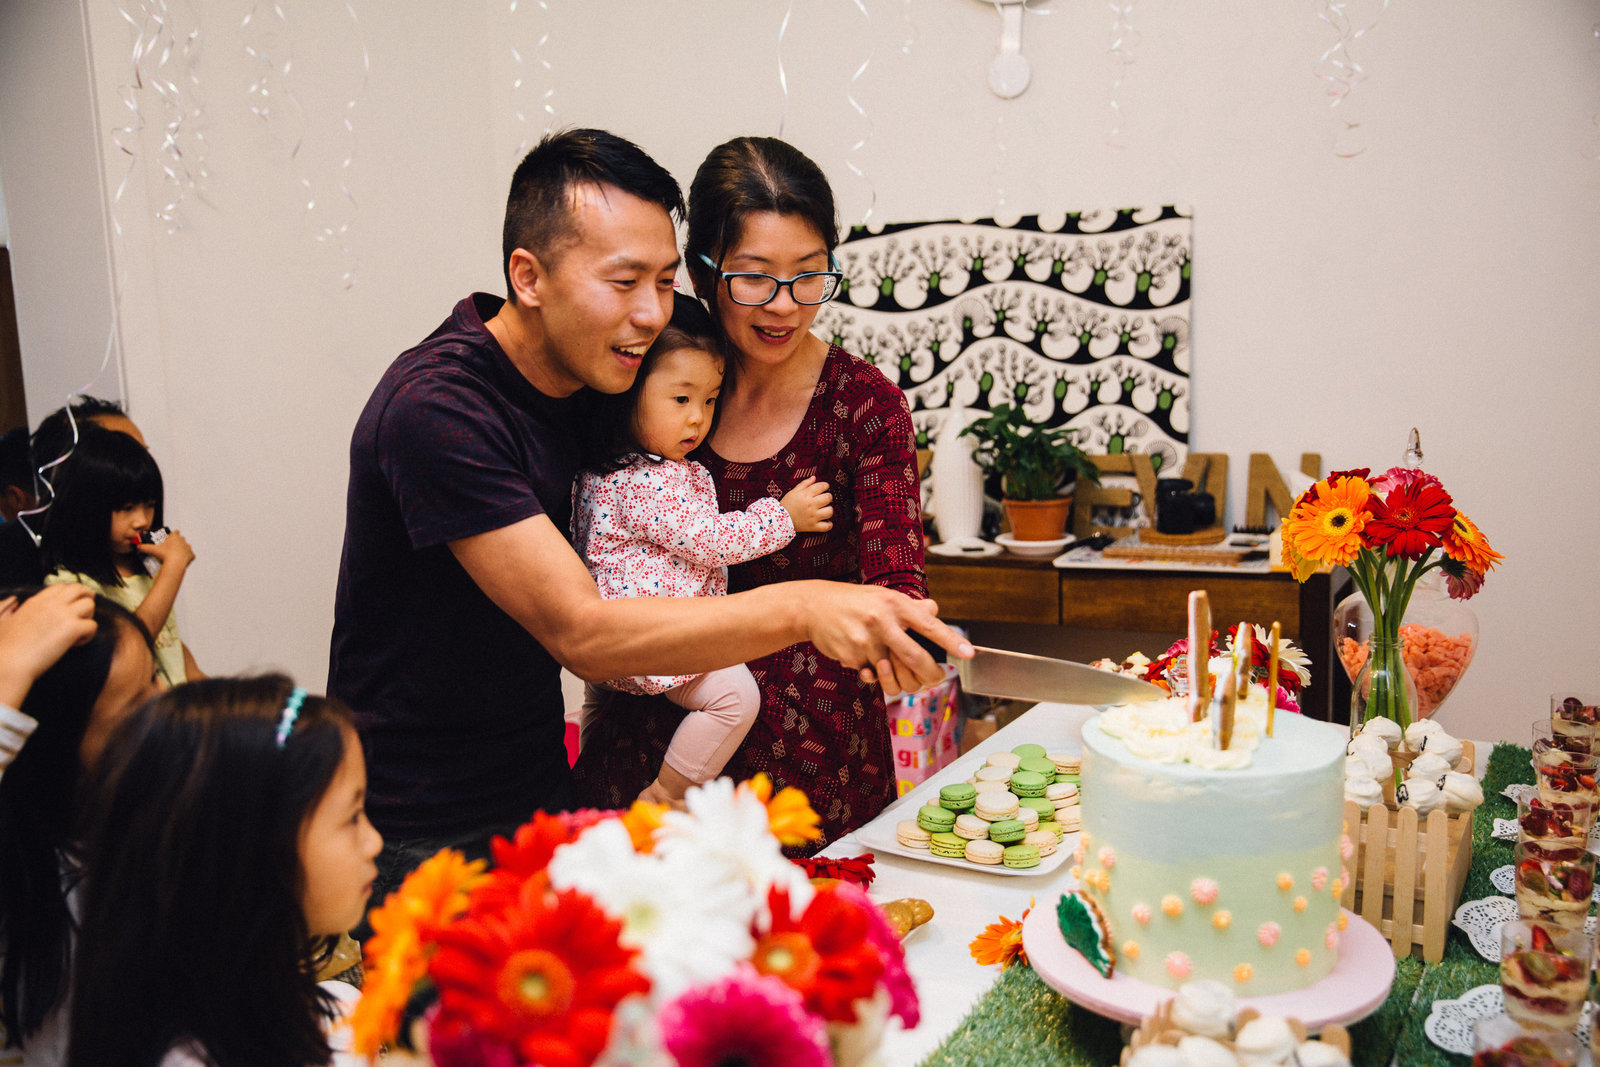 Leah's 1st Birthday Party 15 Oct 2017-352